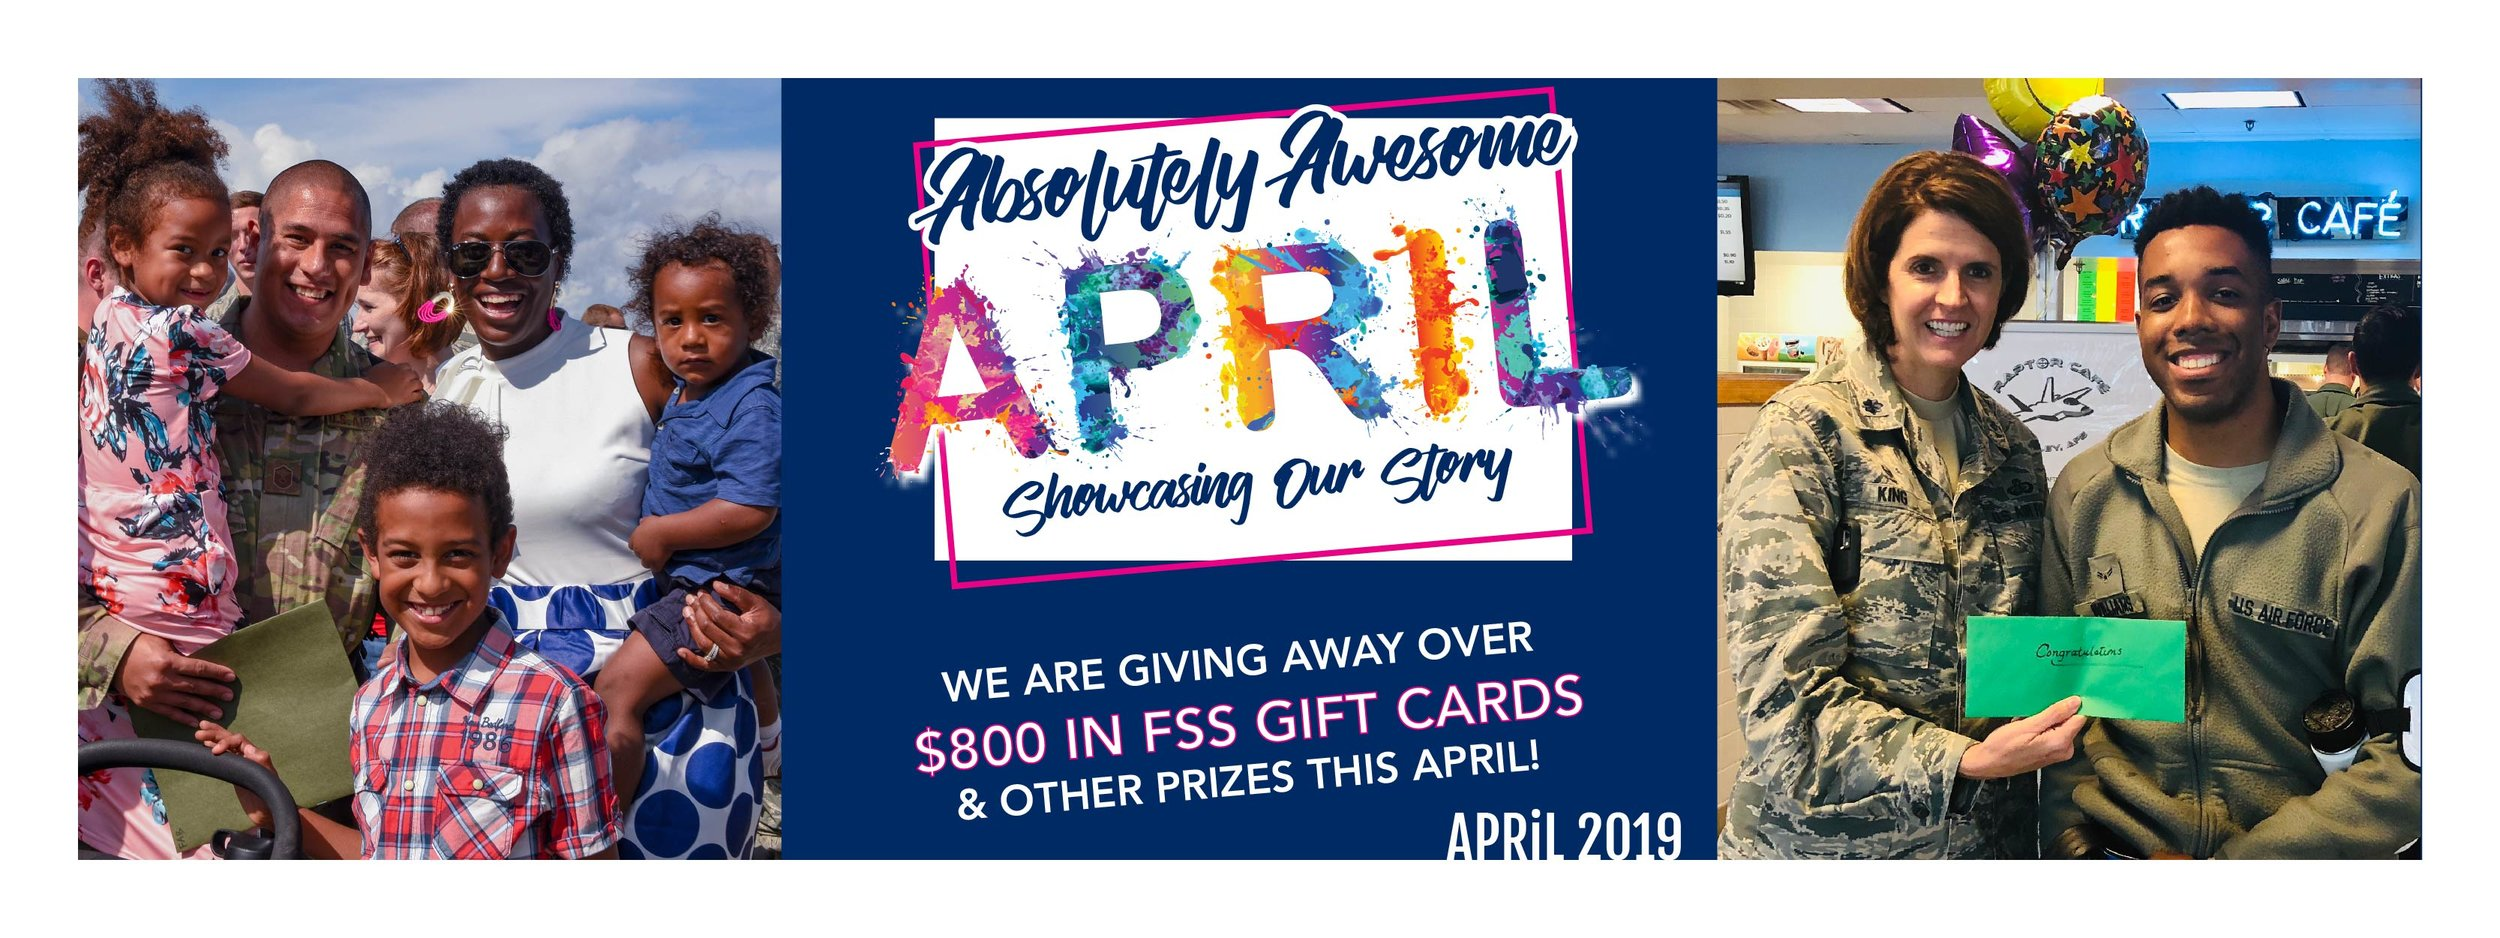 Absolutely Awesome April